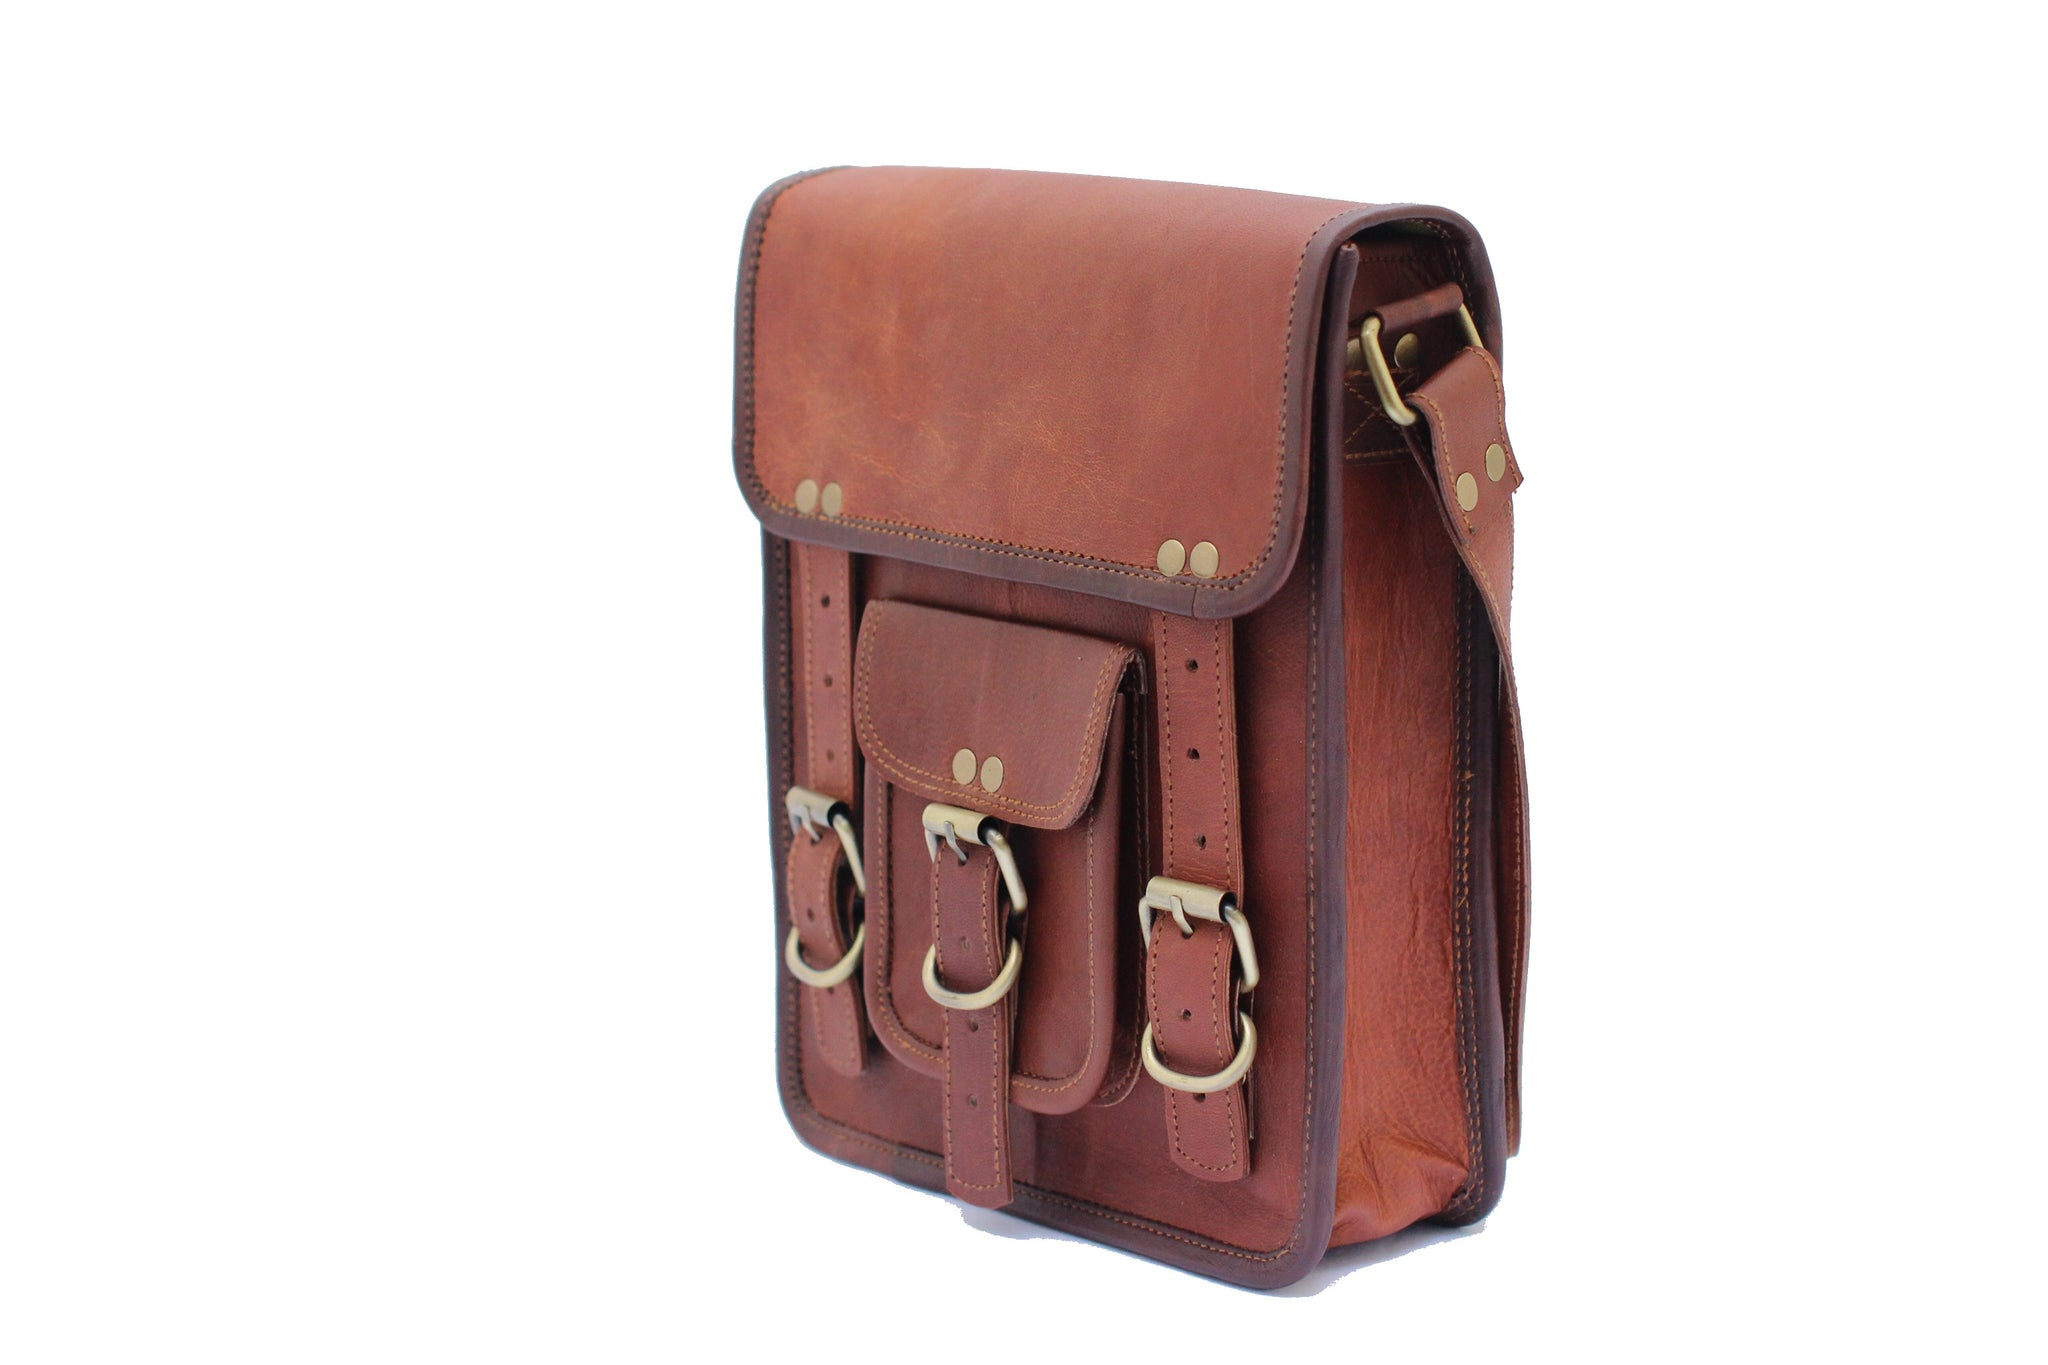 aaecee3247 ... Brave Leather Tablet Bag